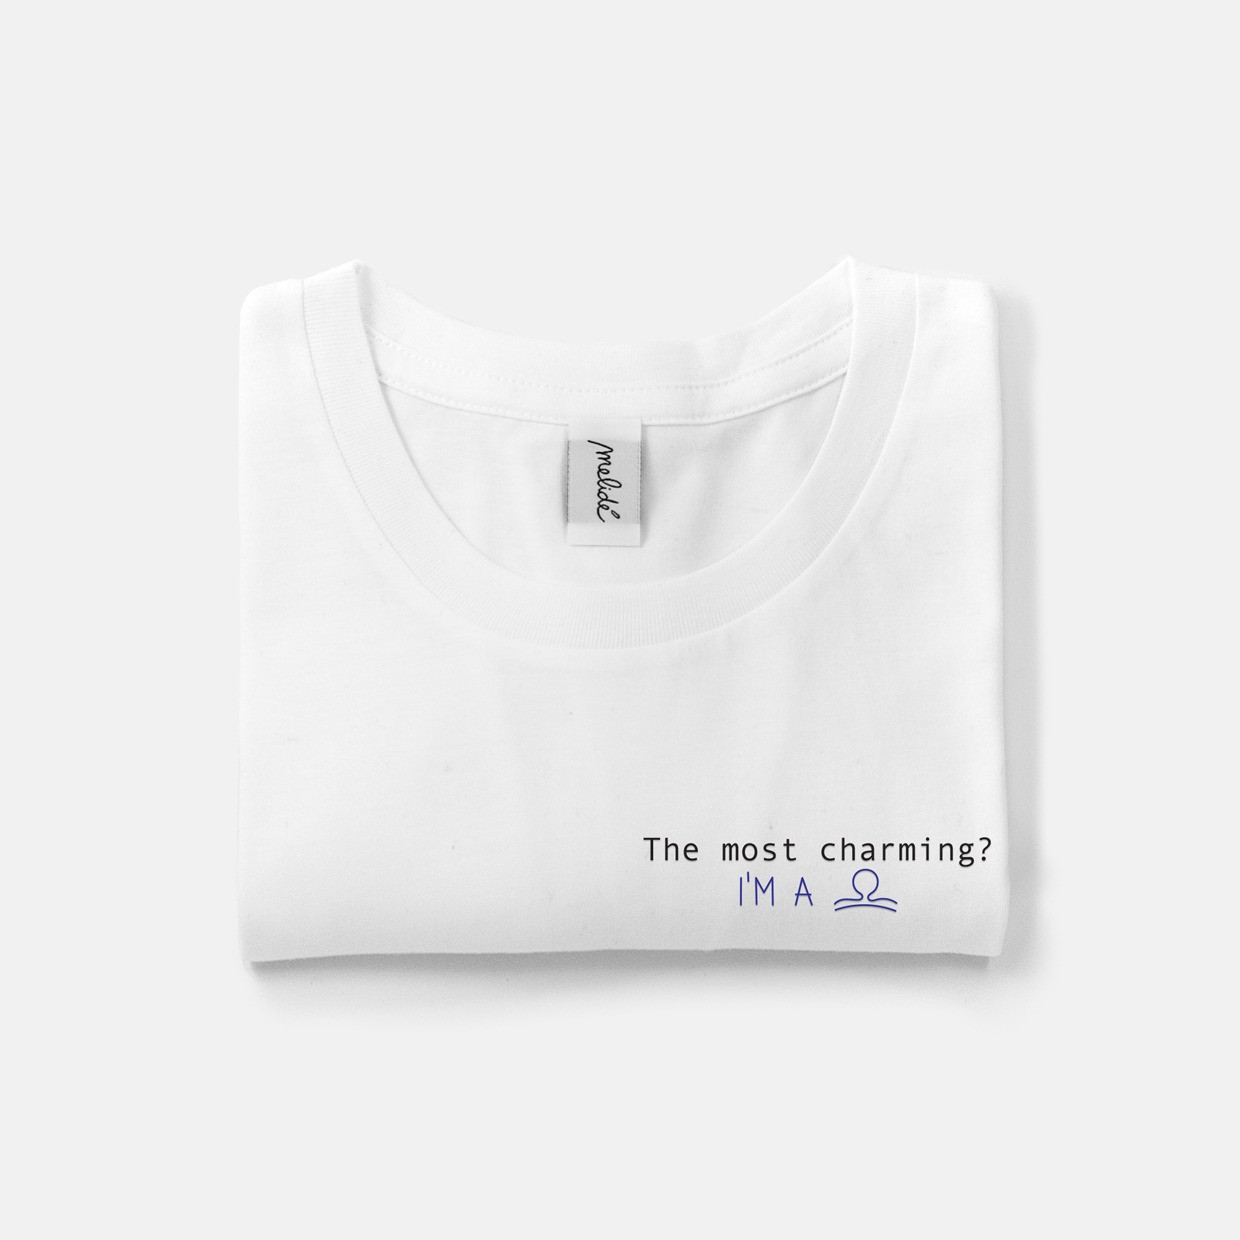 The MOST CHARMING? LIBRA ultimate tee